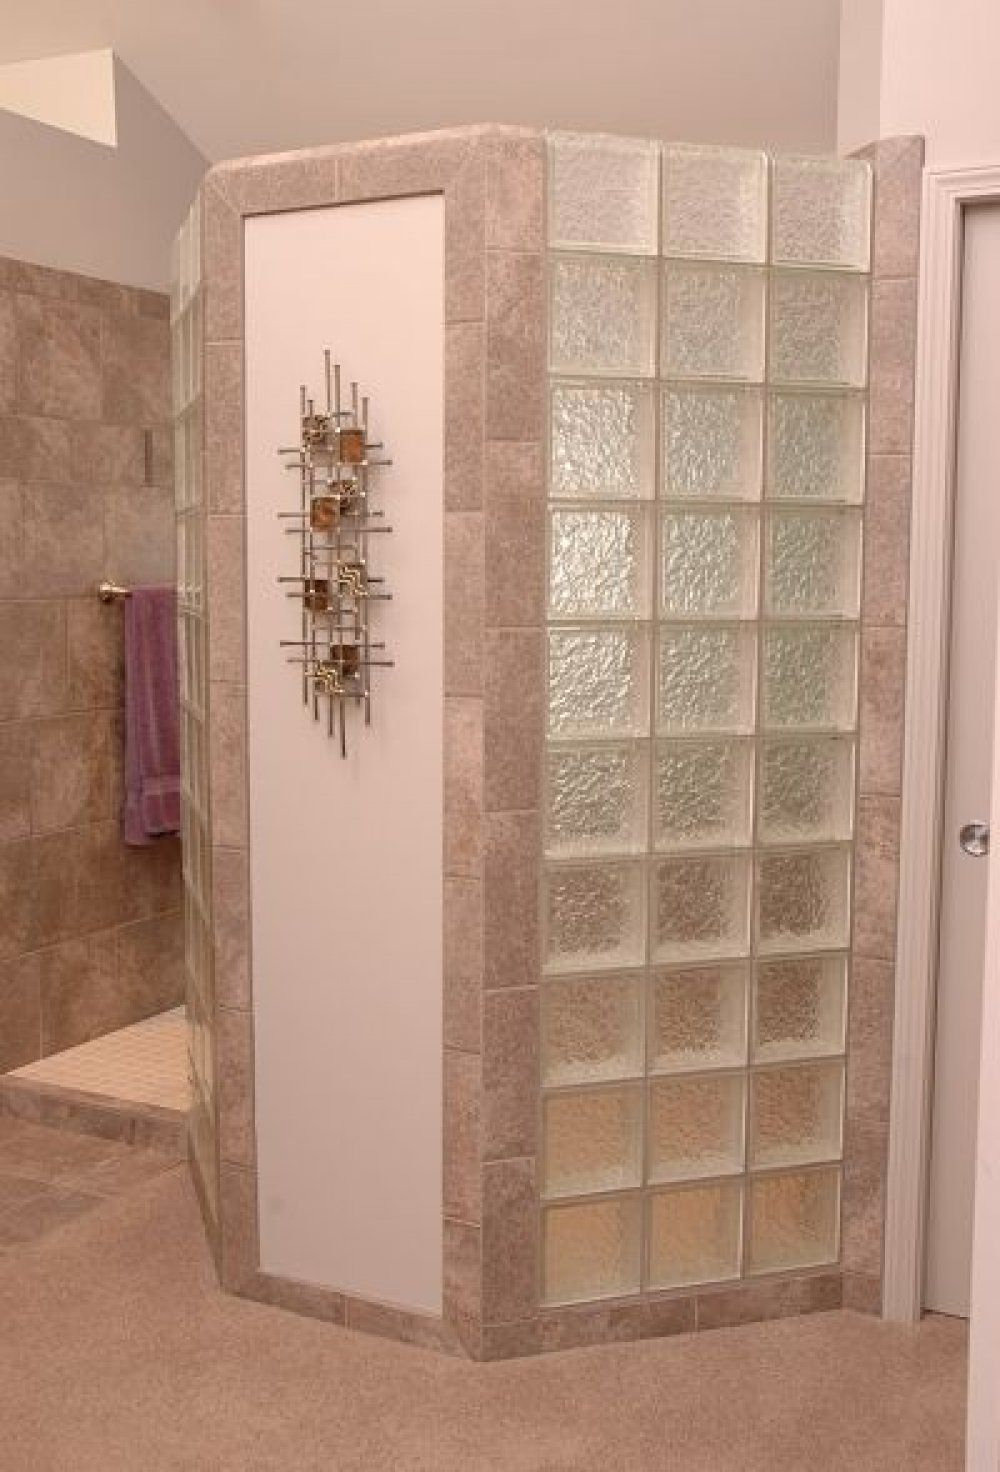 Bathroom doorless shower ideas - Find This Pin And More On Bathrooms Doorless Walk In Shower